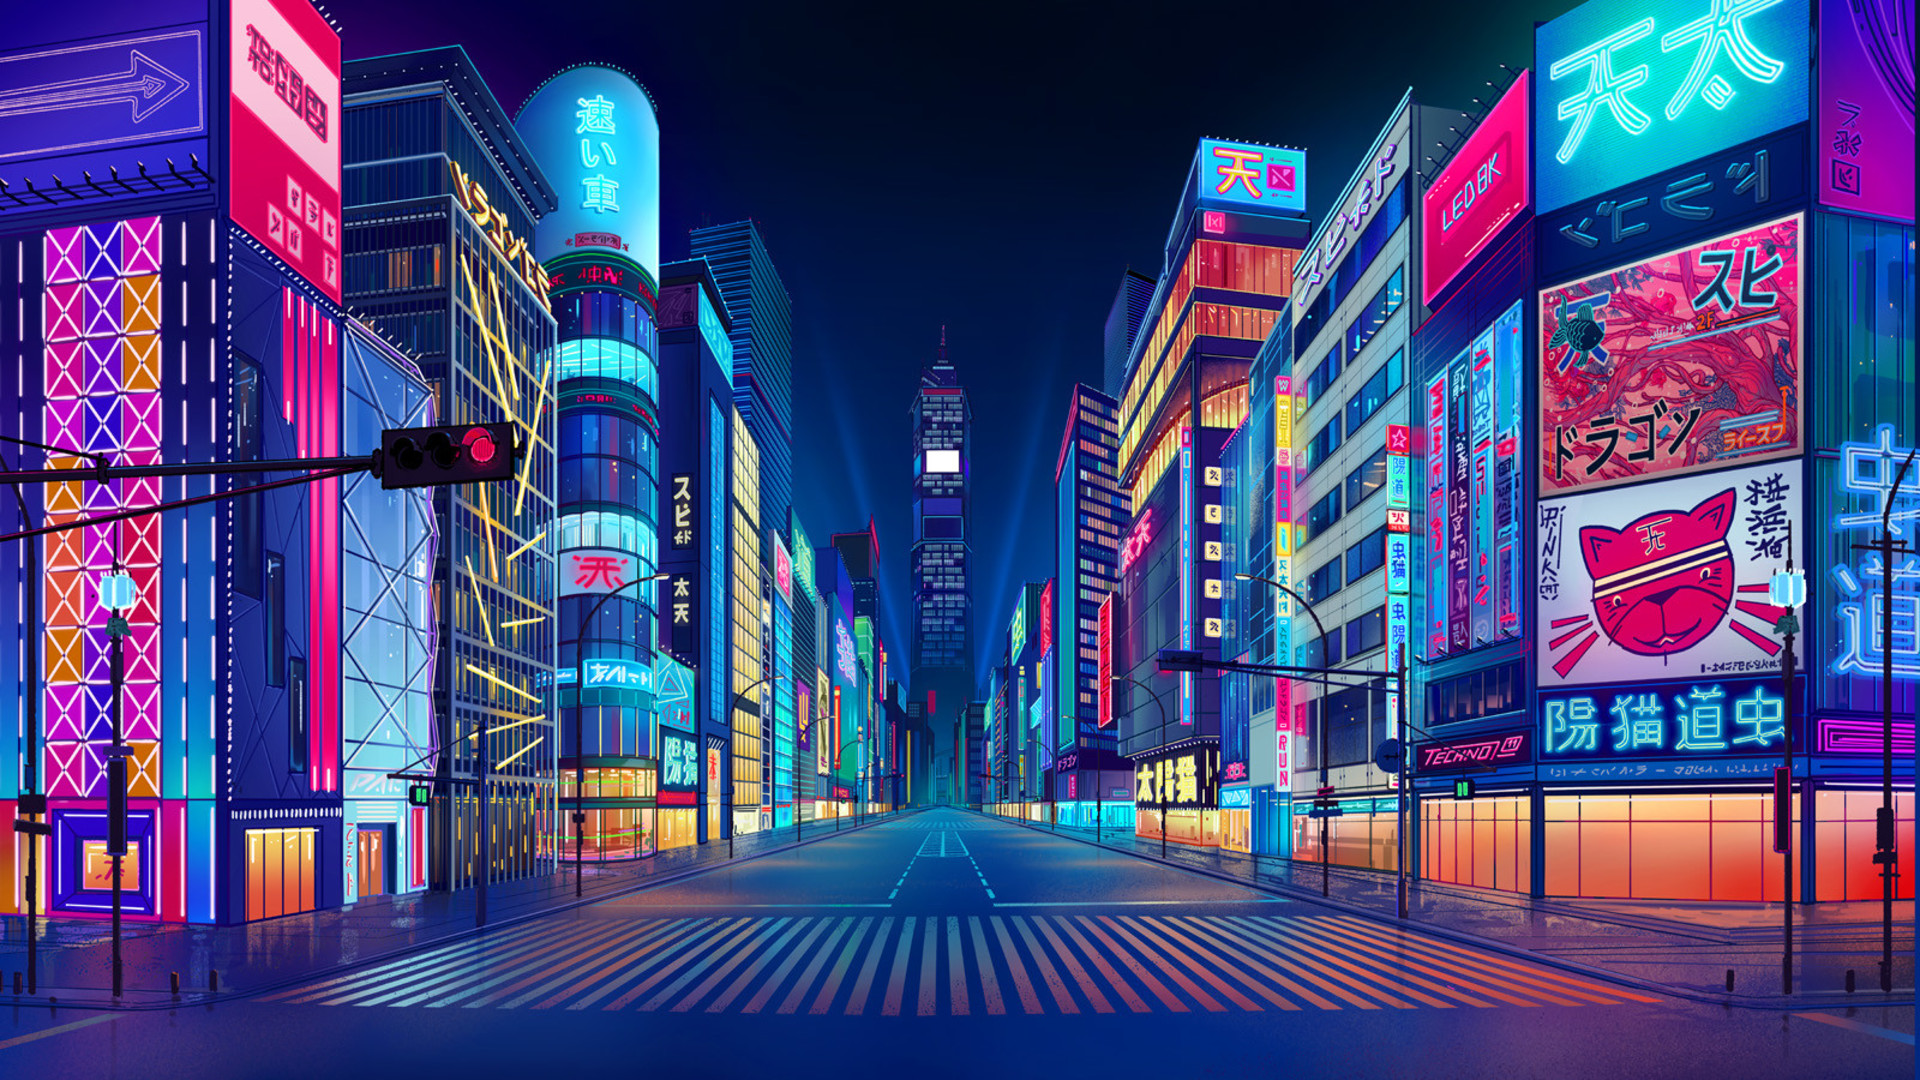 Wallpaper Tokyo Posted By Michelle Cunningham